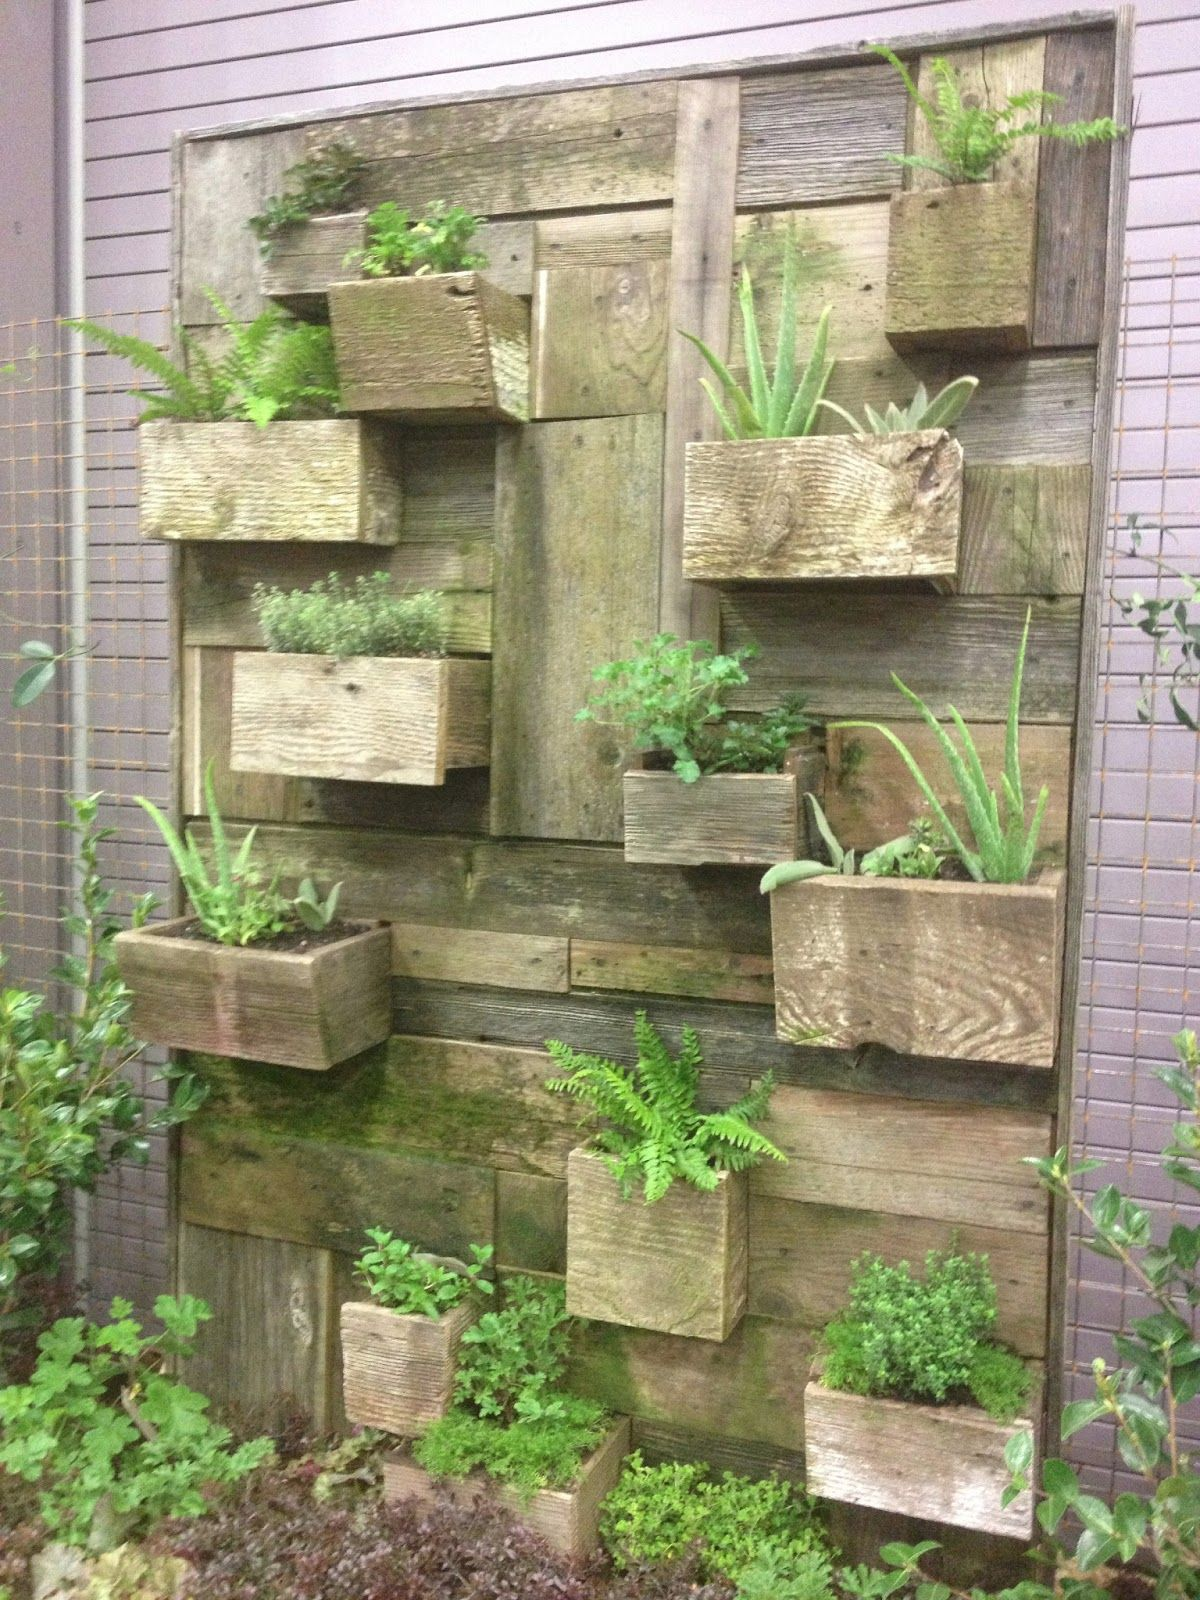 Vertical Vegetable Gardening Ideas vertical vegetable gardens ideas A Smaller Version Of This Kind Of Thing Would Cover Up The Ugly Chain Link Fence